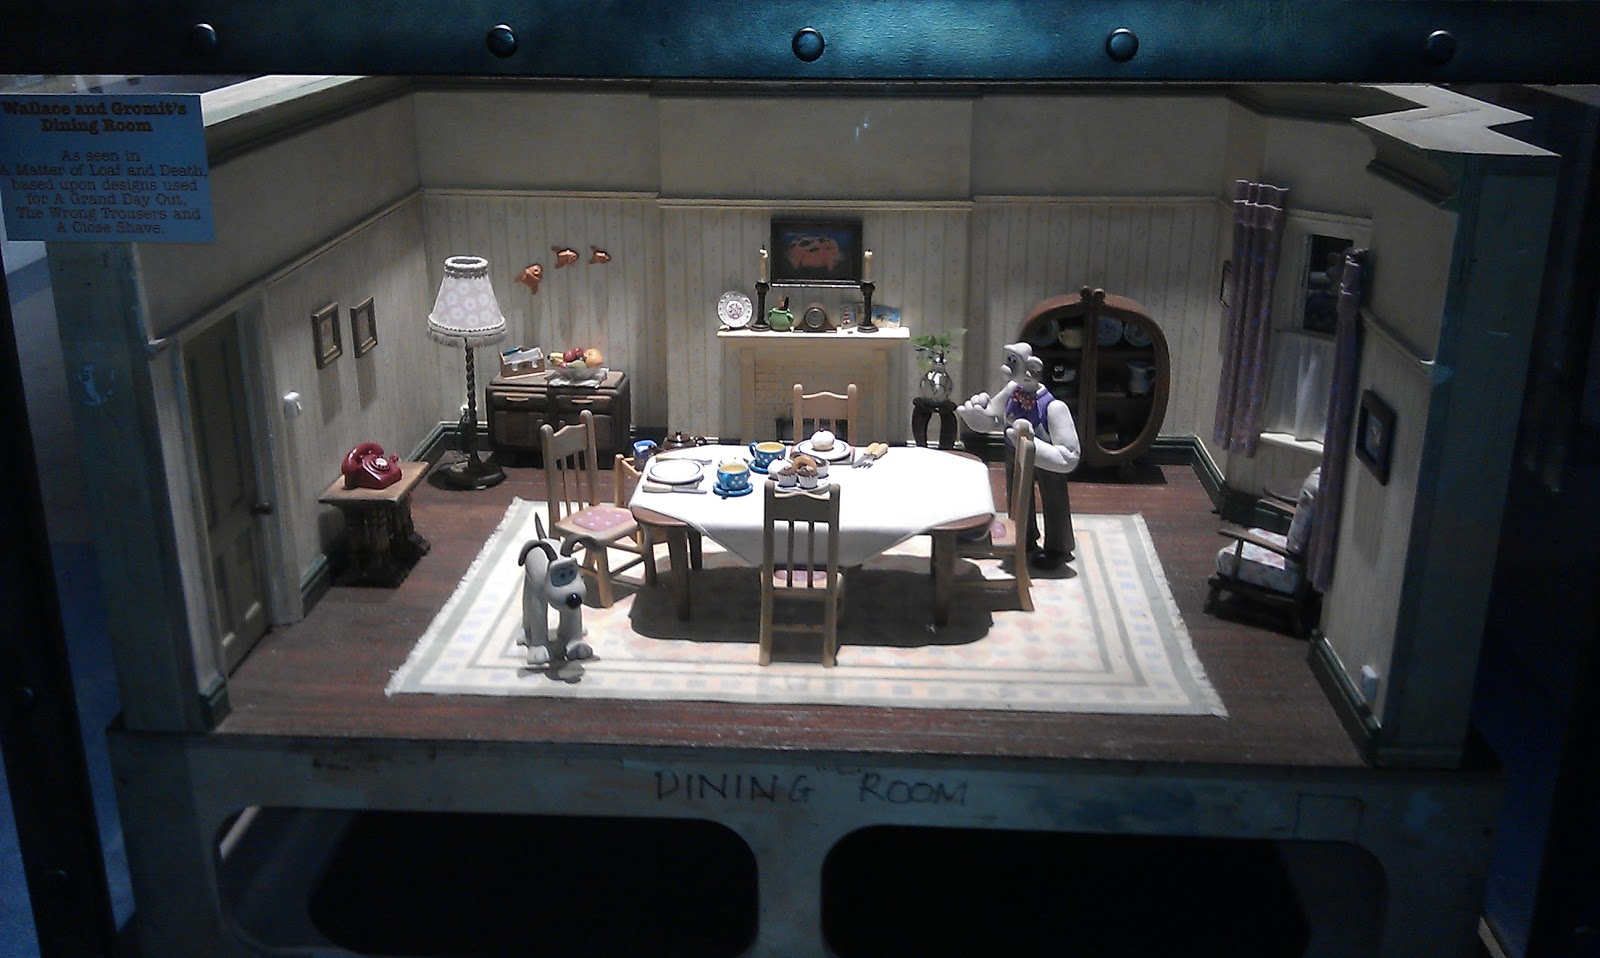 Designer dioramas miniature rooms - 121 Best Art Miniature Sets And Props Images On Pinterest Dollhouse Tutorials Miniature Tutorials And Stop Motion